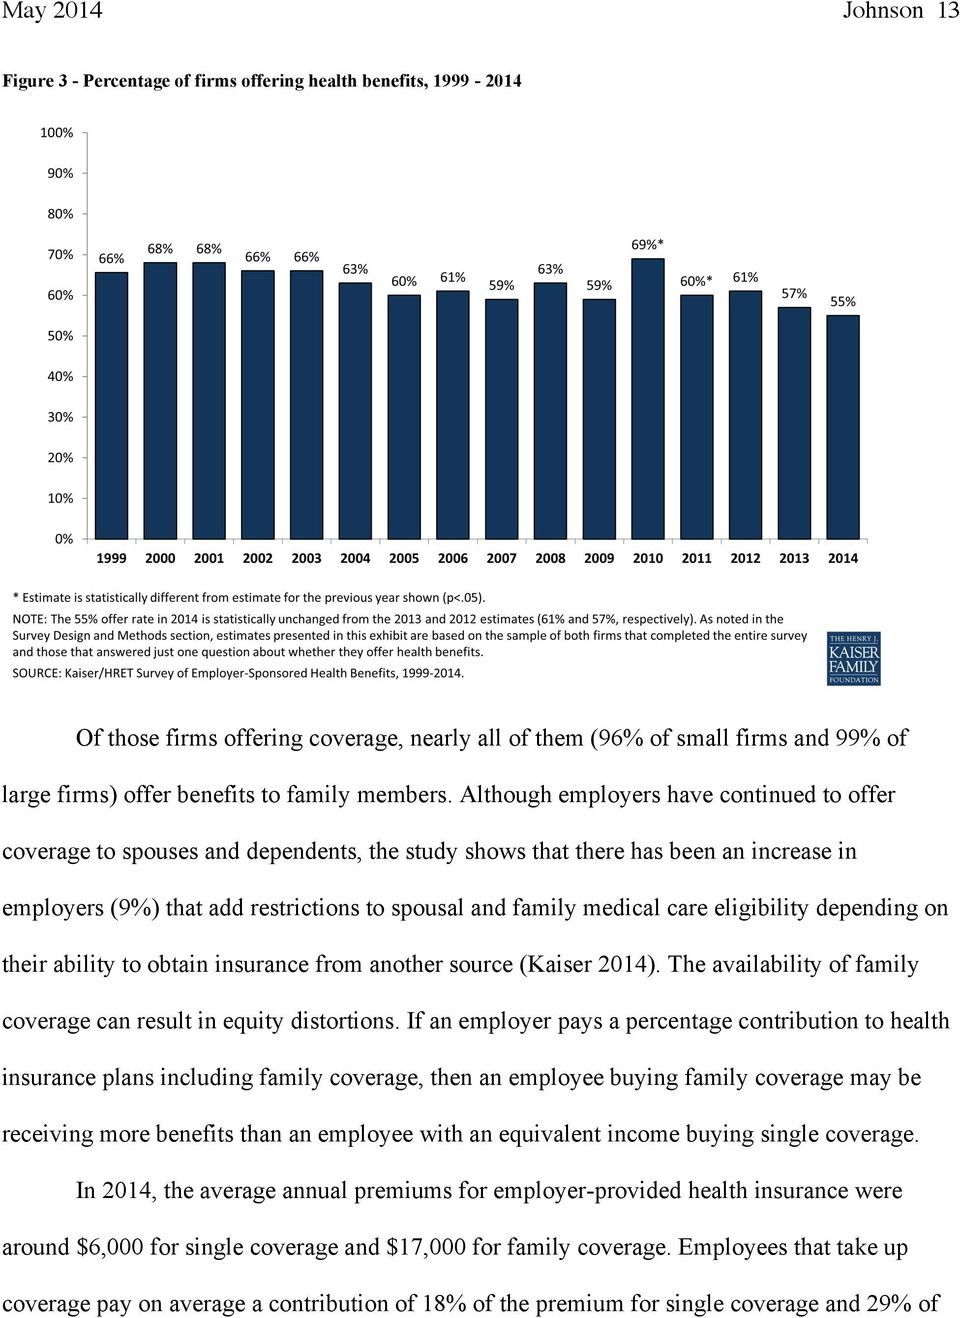 Although employers have continued to offer coverage to spouses and dependents, the study shows that there has been an increase in employers (9%) that add restrictions to spousal and family medical